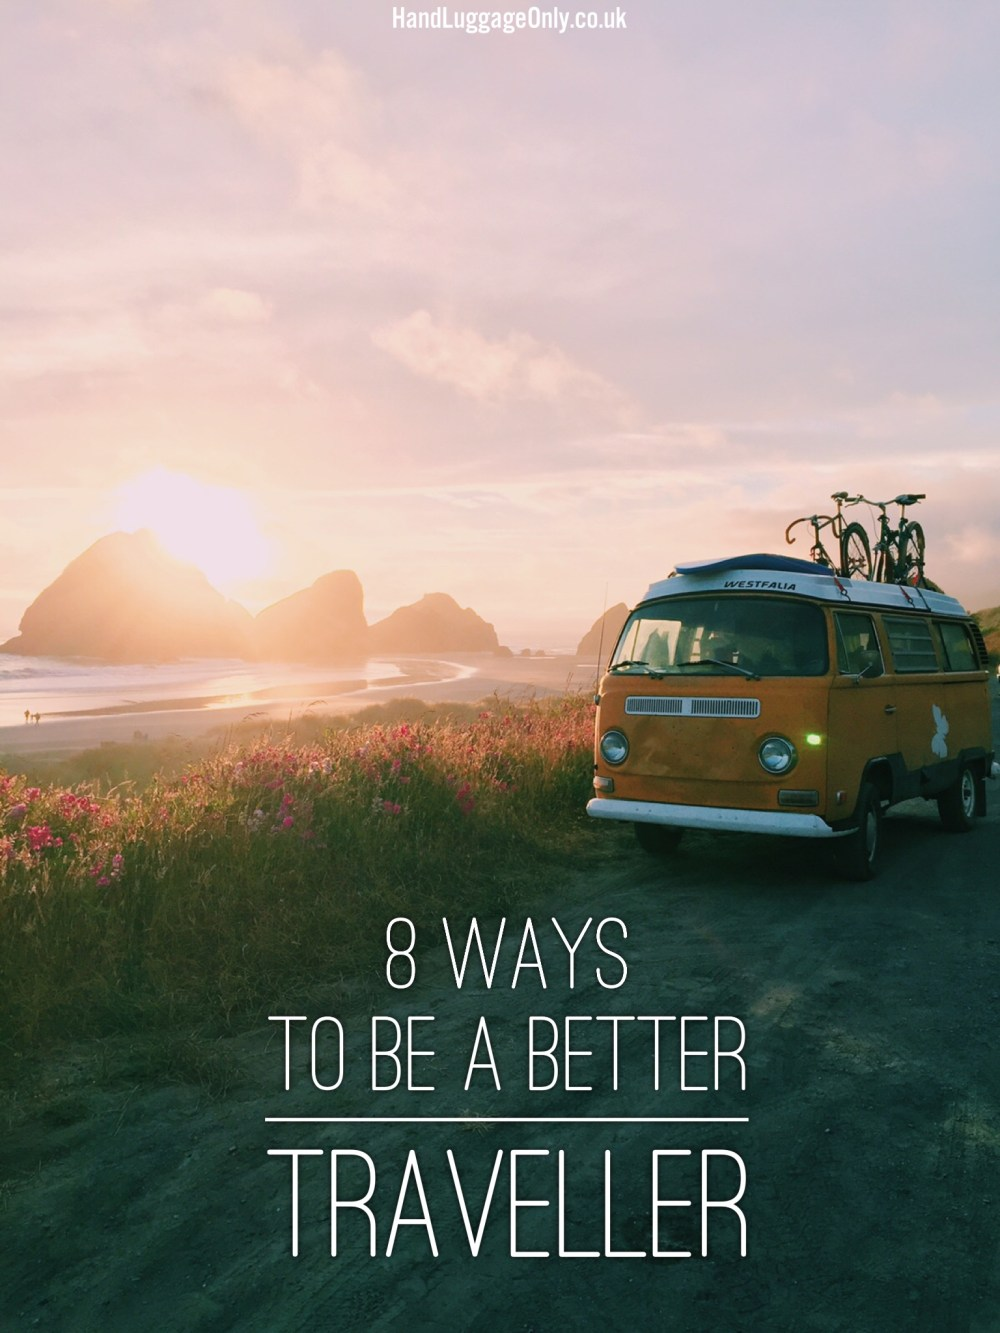 8 Ways To Be A Better Traveller